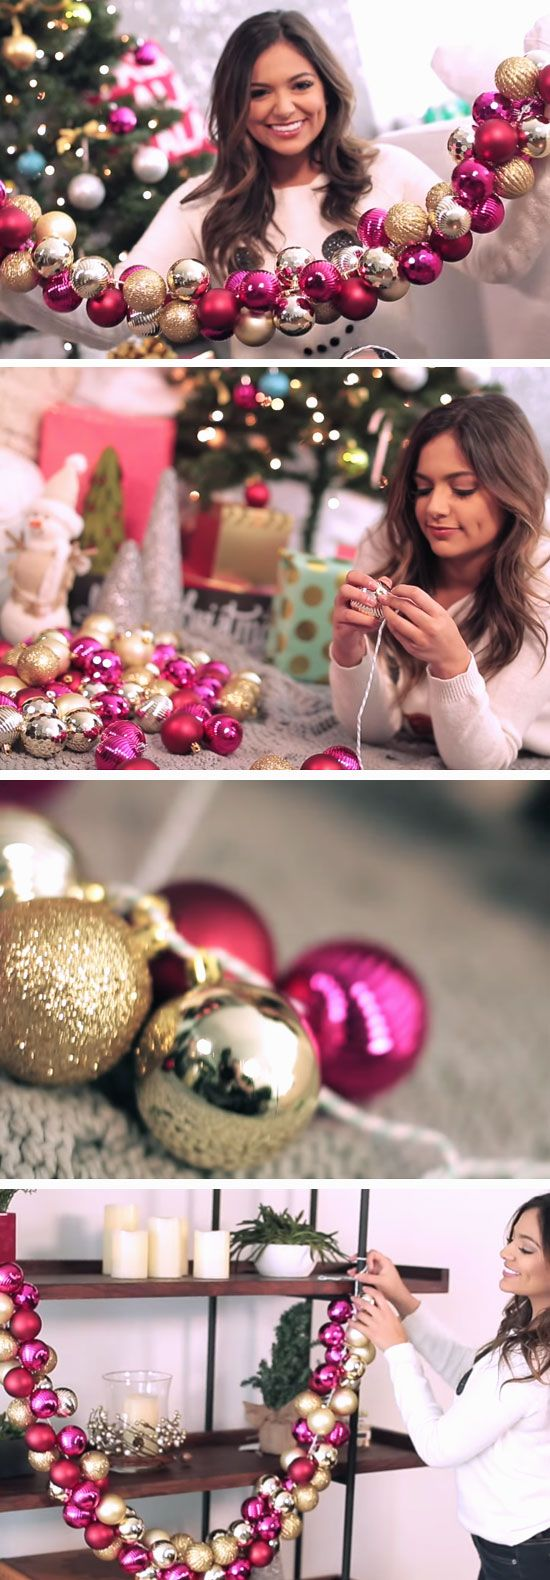 Christmas decoration ideas 2017 christmas ornaments xmas decorations - 22 Diy Christmas Decor Ideas On A Budget You Need To Make